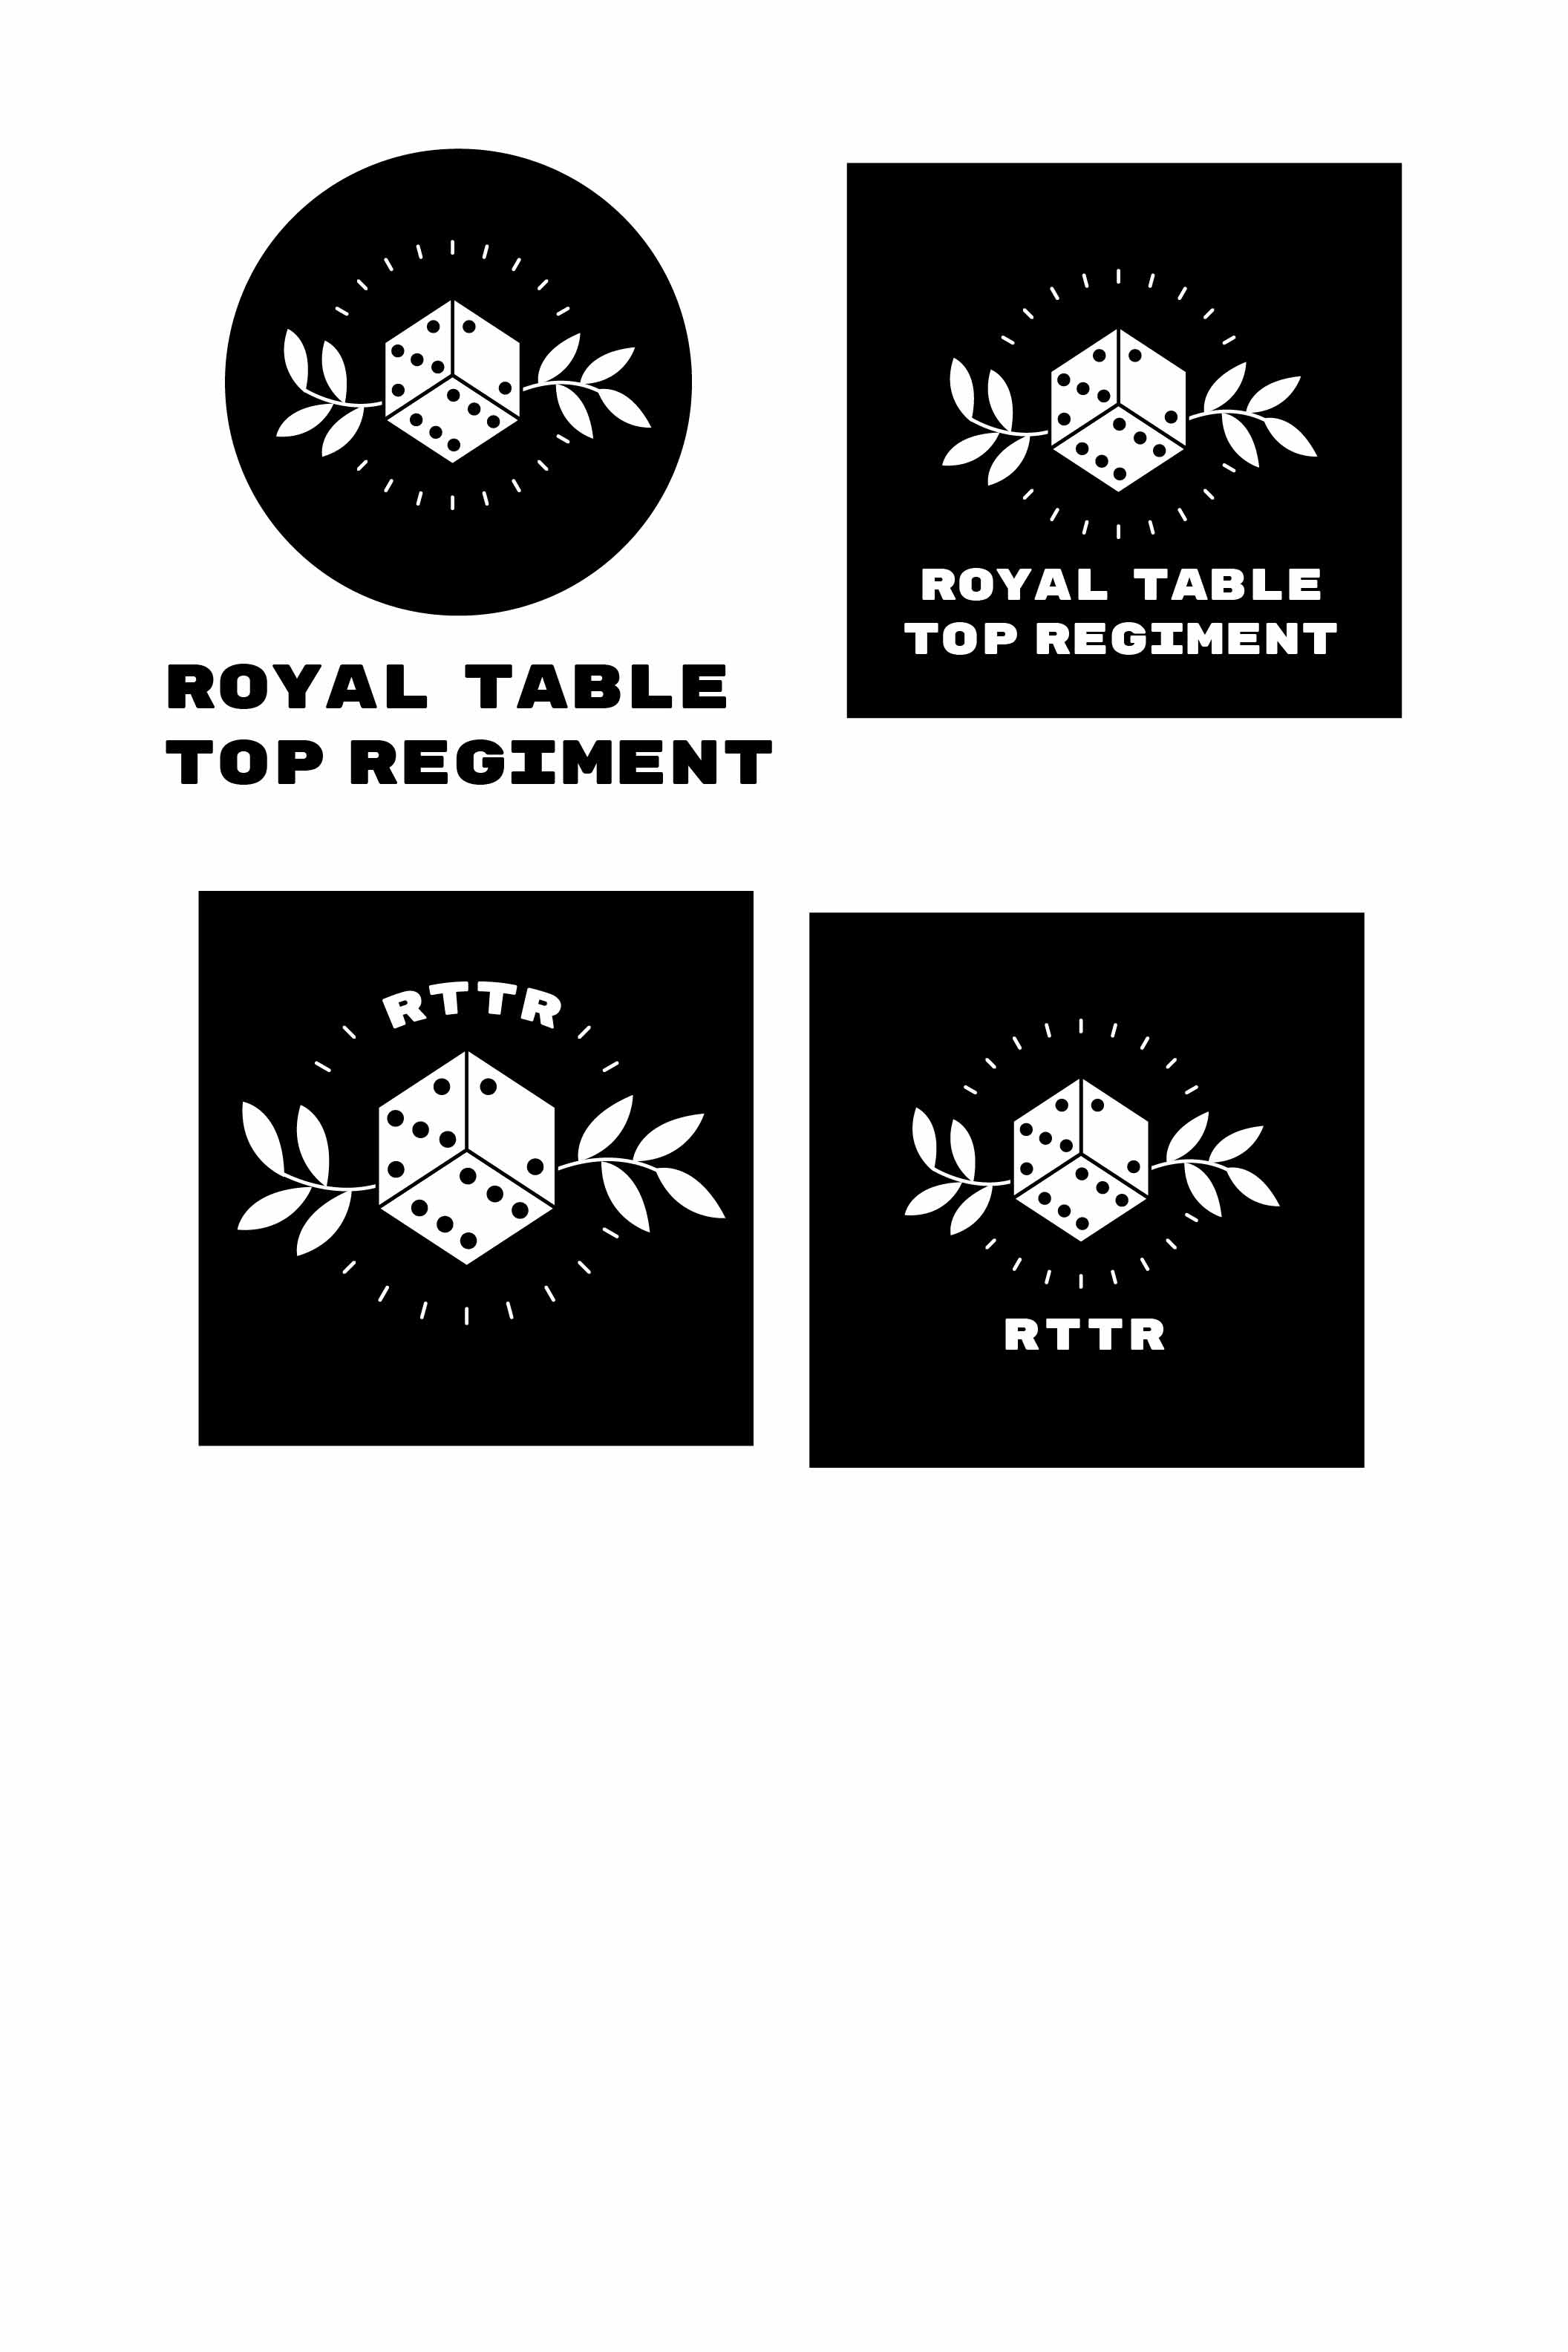 Image of the process of creating the new RTTR logo